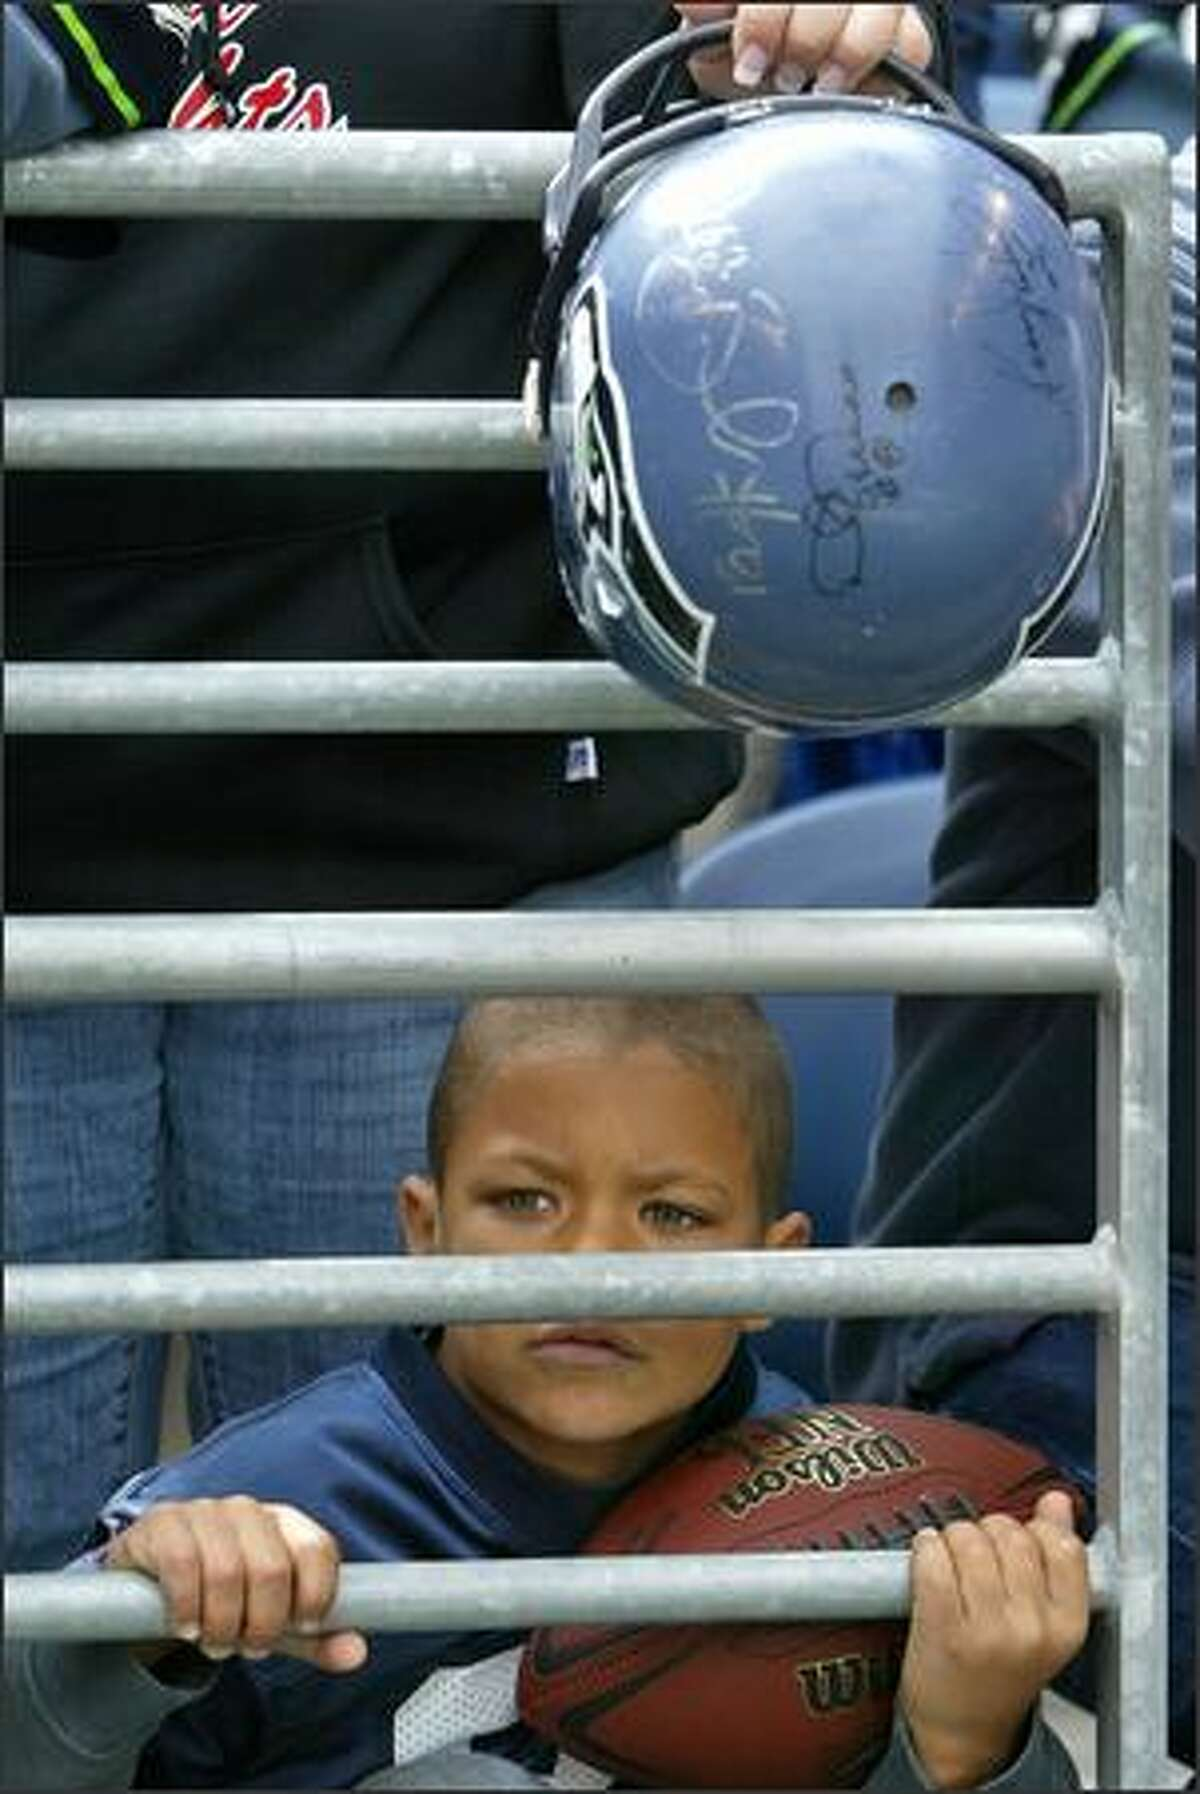 Seattle Seahawks fan Jeffery McMillan, 8, waits to catch an autograph from one of the Seahawks players prior to their game against the Cincinnati Bengals at Qwest Field on Sunday Sept. 23, 2007.